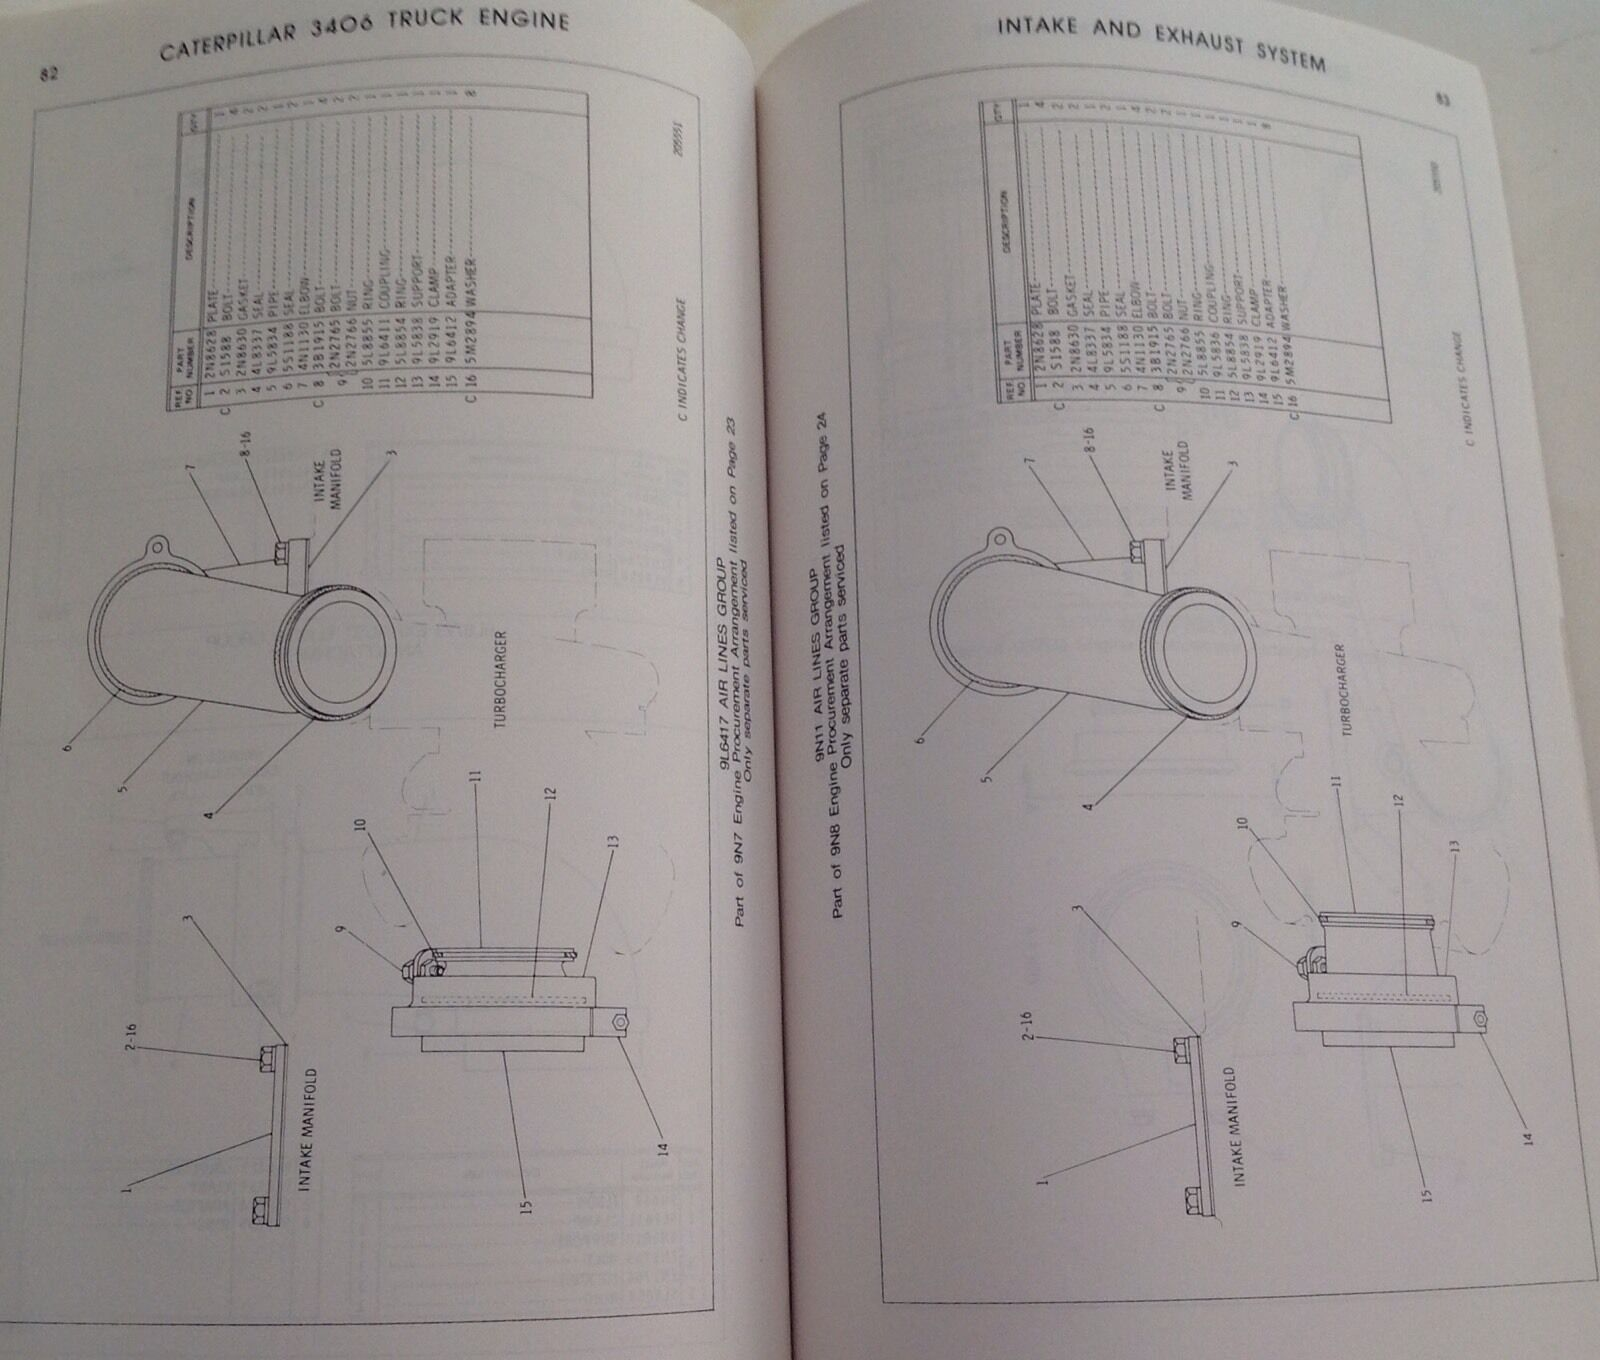 Caterpillar Cat 3406 Truck Engine Parts Manual Book Serial 92u1 To 13 Diagram 92u2700 Ebay